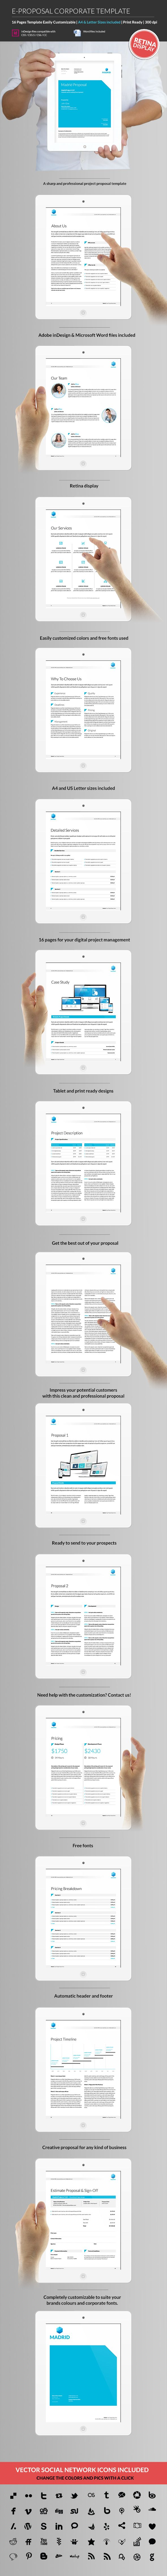 Do you need a e-proposal to explain your #businessplan? #design #template